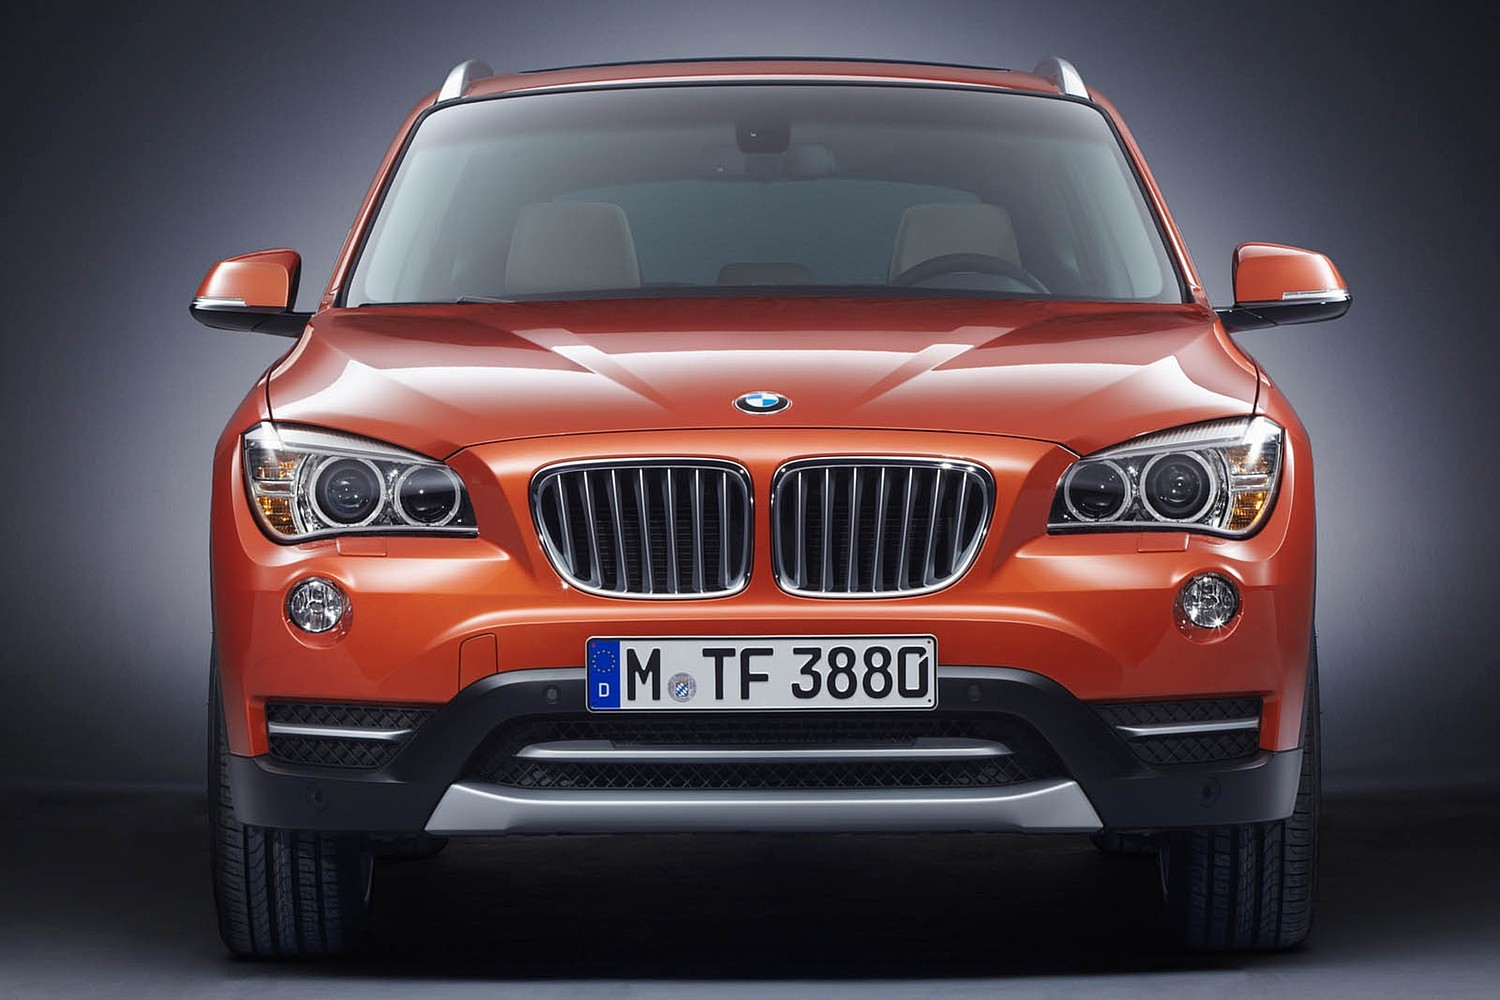 BMW X1 xDrive35i 4dr SUV Exterior (2013 model year shown)